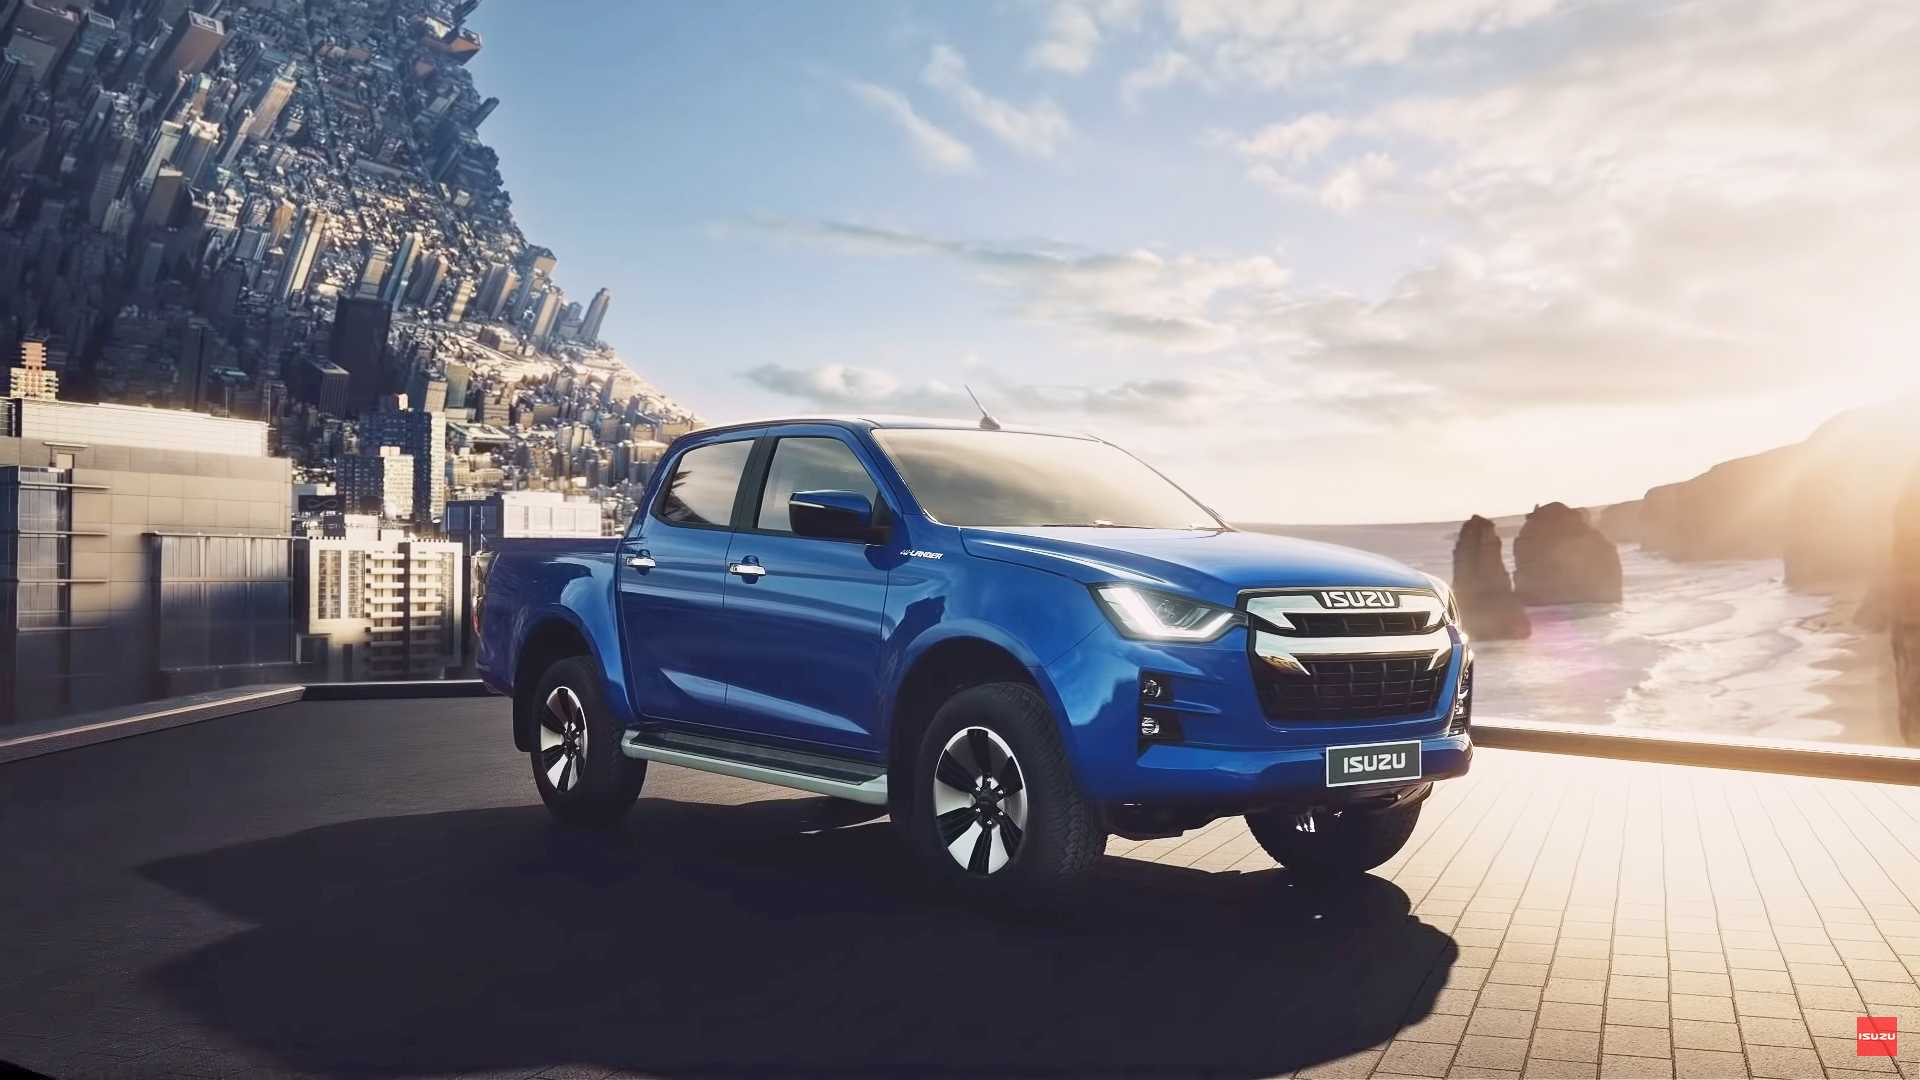 2020 Isuzu D Max Concept Interior Design And Release Date >> 2020 Isuzu D Max Debuts Its New Truck Bod In Thailand